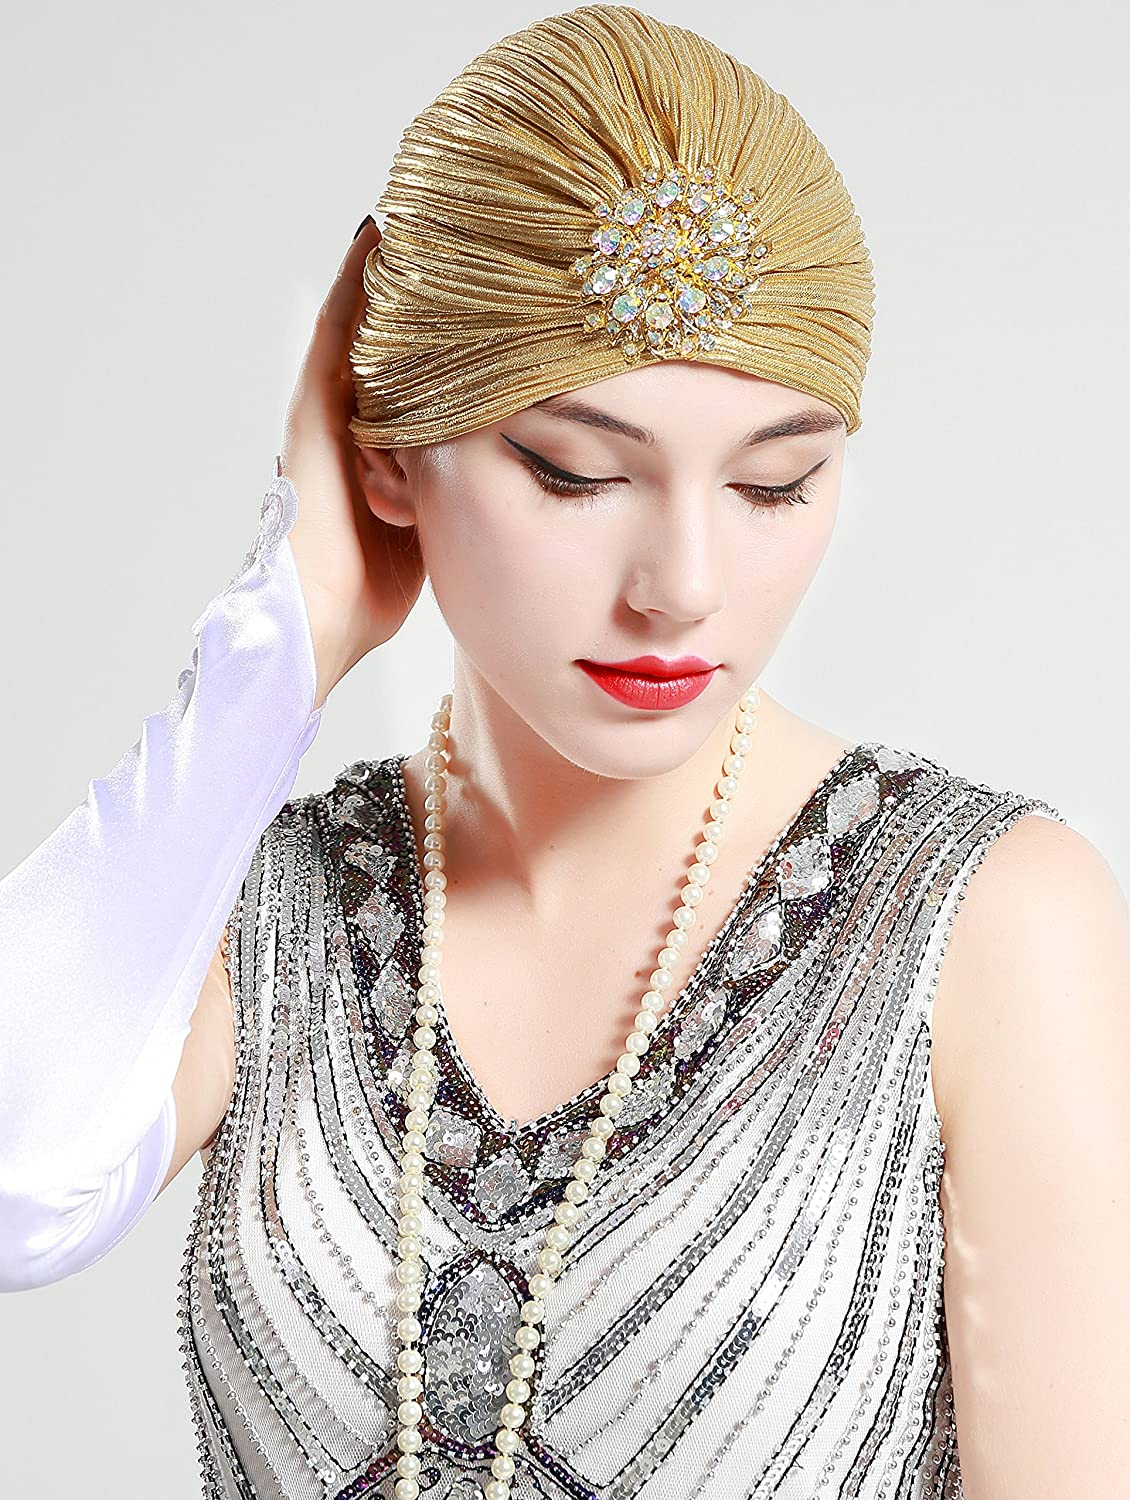 70s Headbands, Wigs, Hair Accessories BABEYOND Womens Ruffle Turban Hat Knit Turban Headwraps with Detachable Crystal Brooch for 1920s Gatsby Party $11.99 AT vintagedancer.com